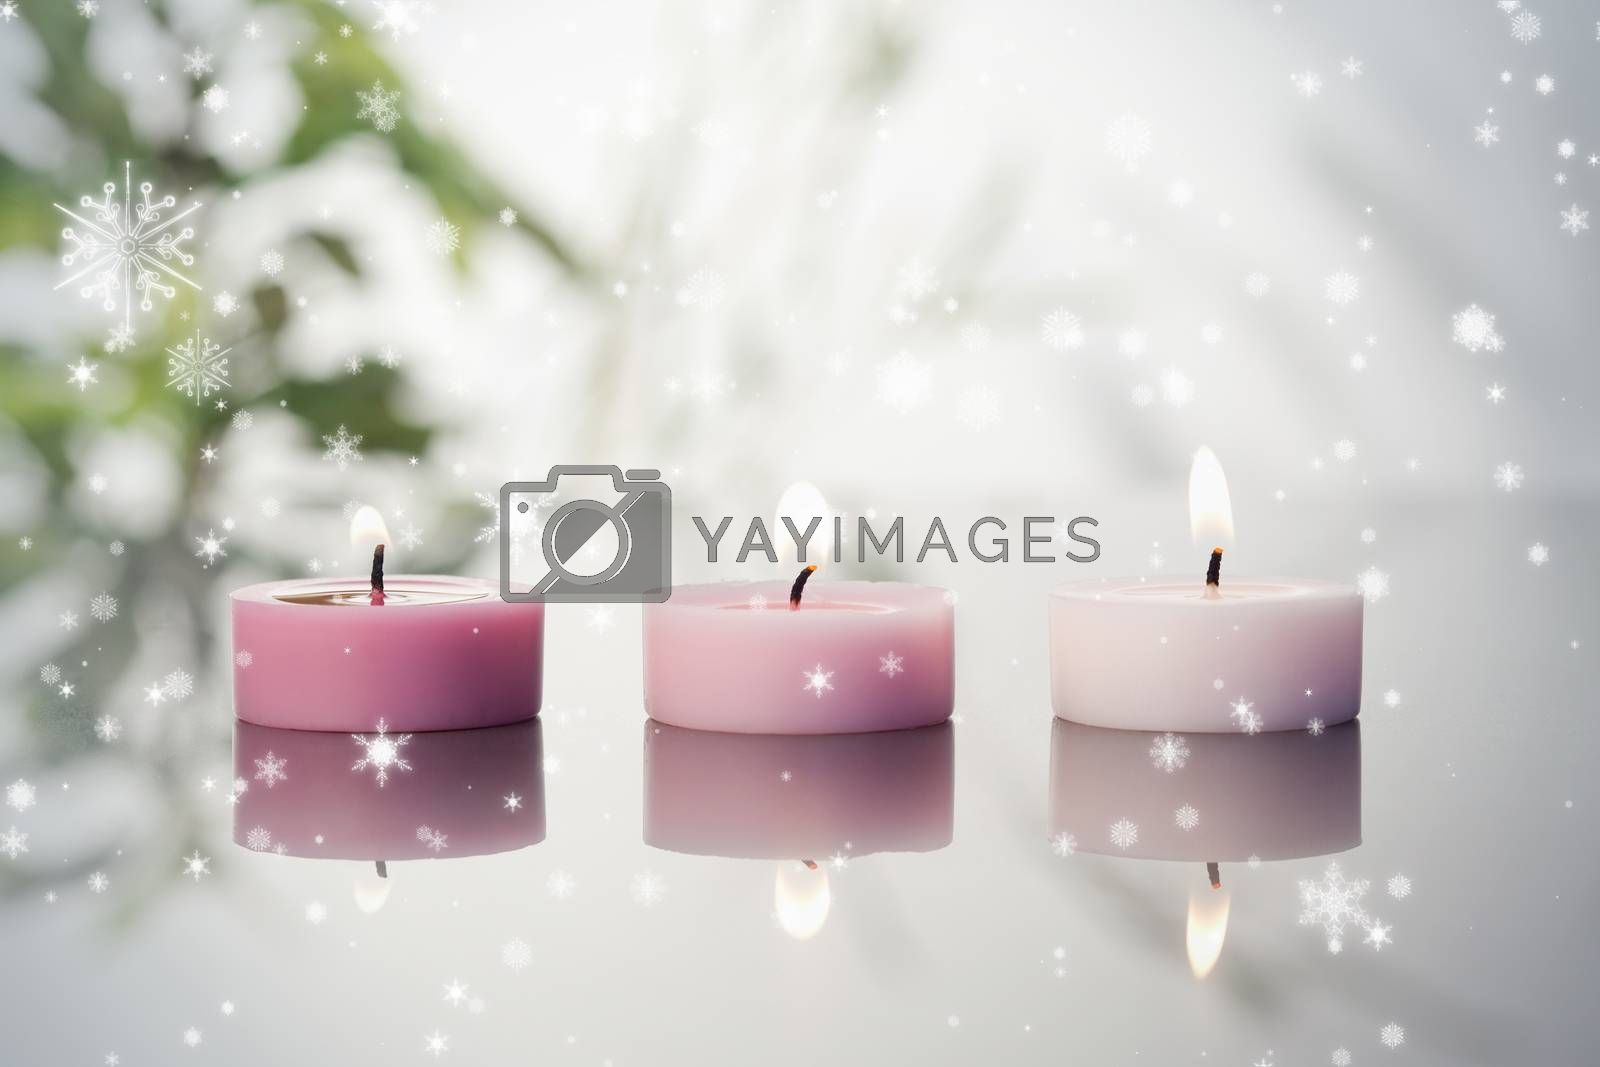 Composite image of snow falling against lighted candles on a mirror